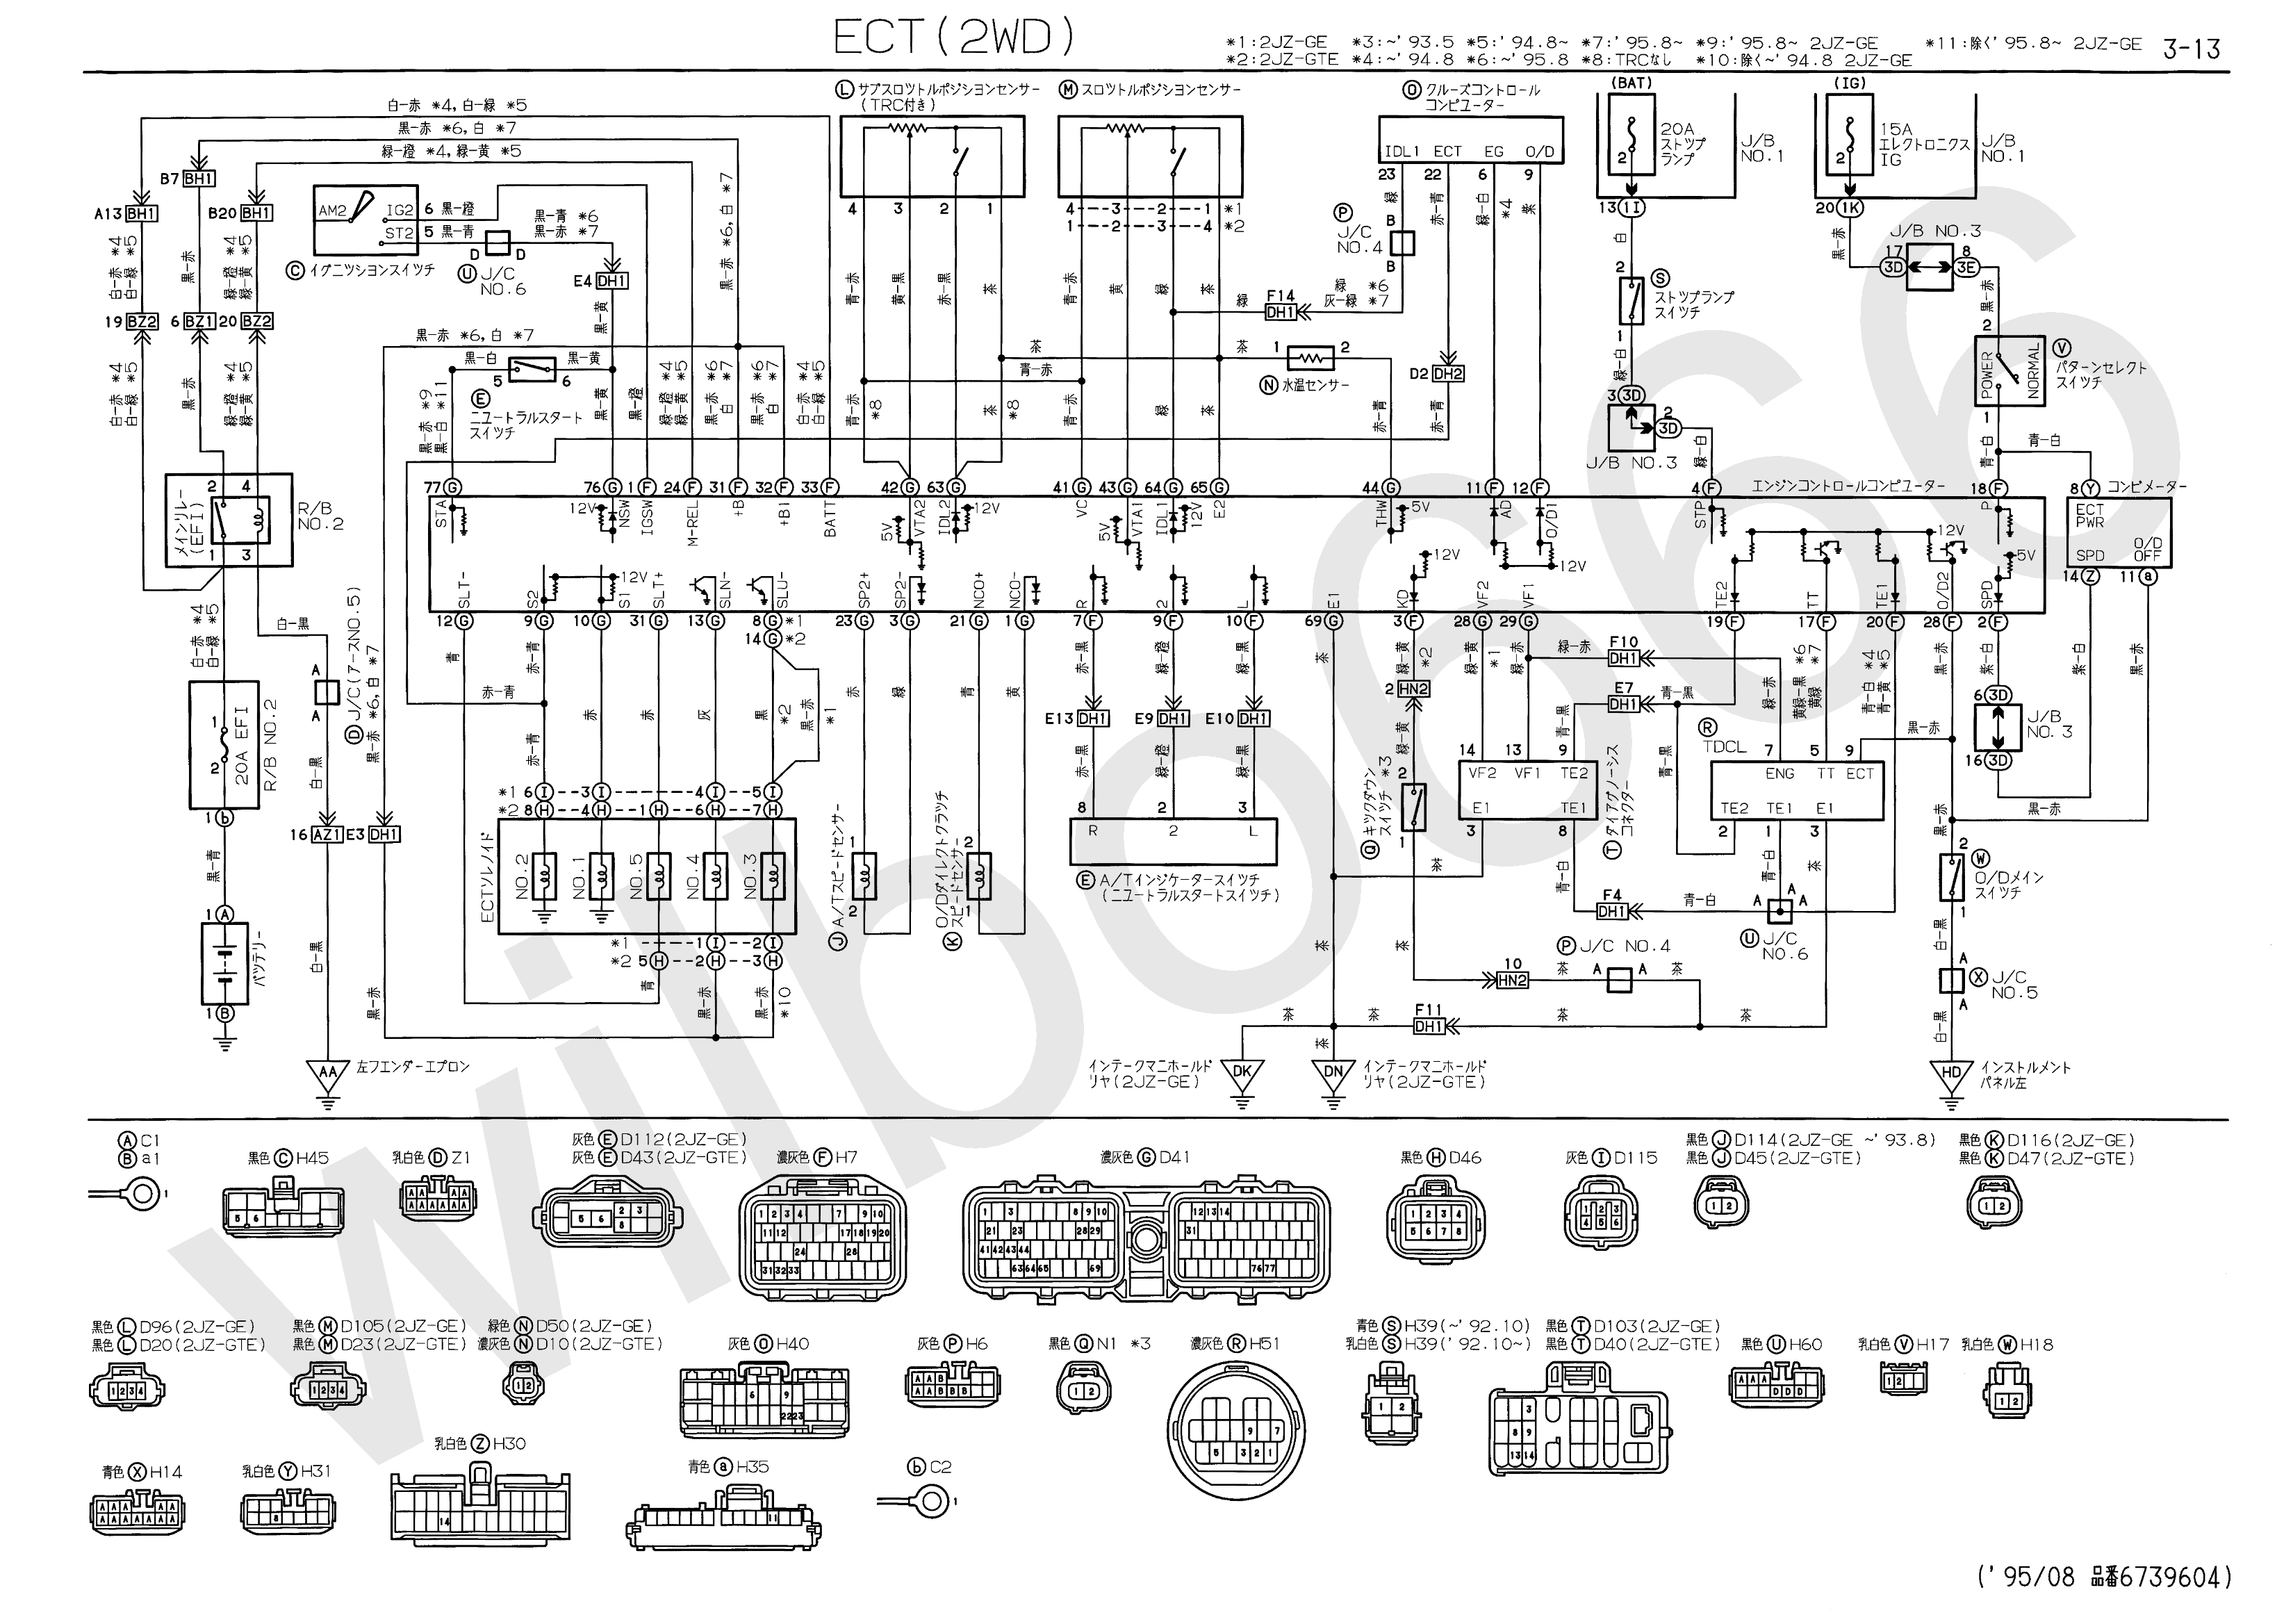 wilbo jz ge jzs engine wiring jzs14 uzs14 electrical wiring diagram book 6739604